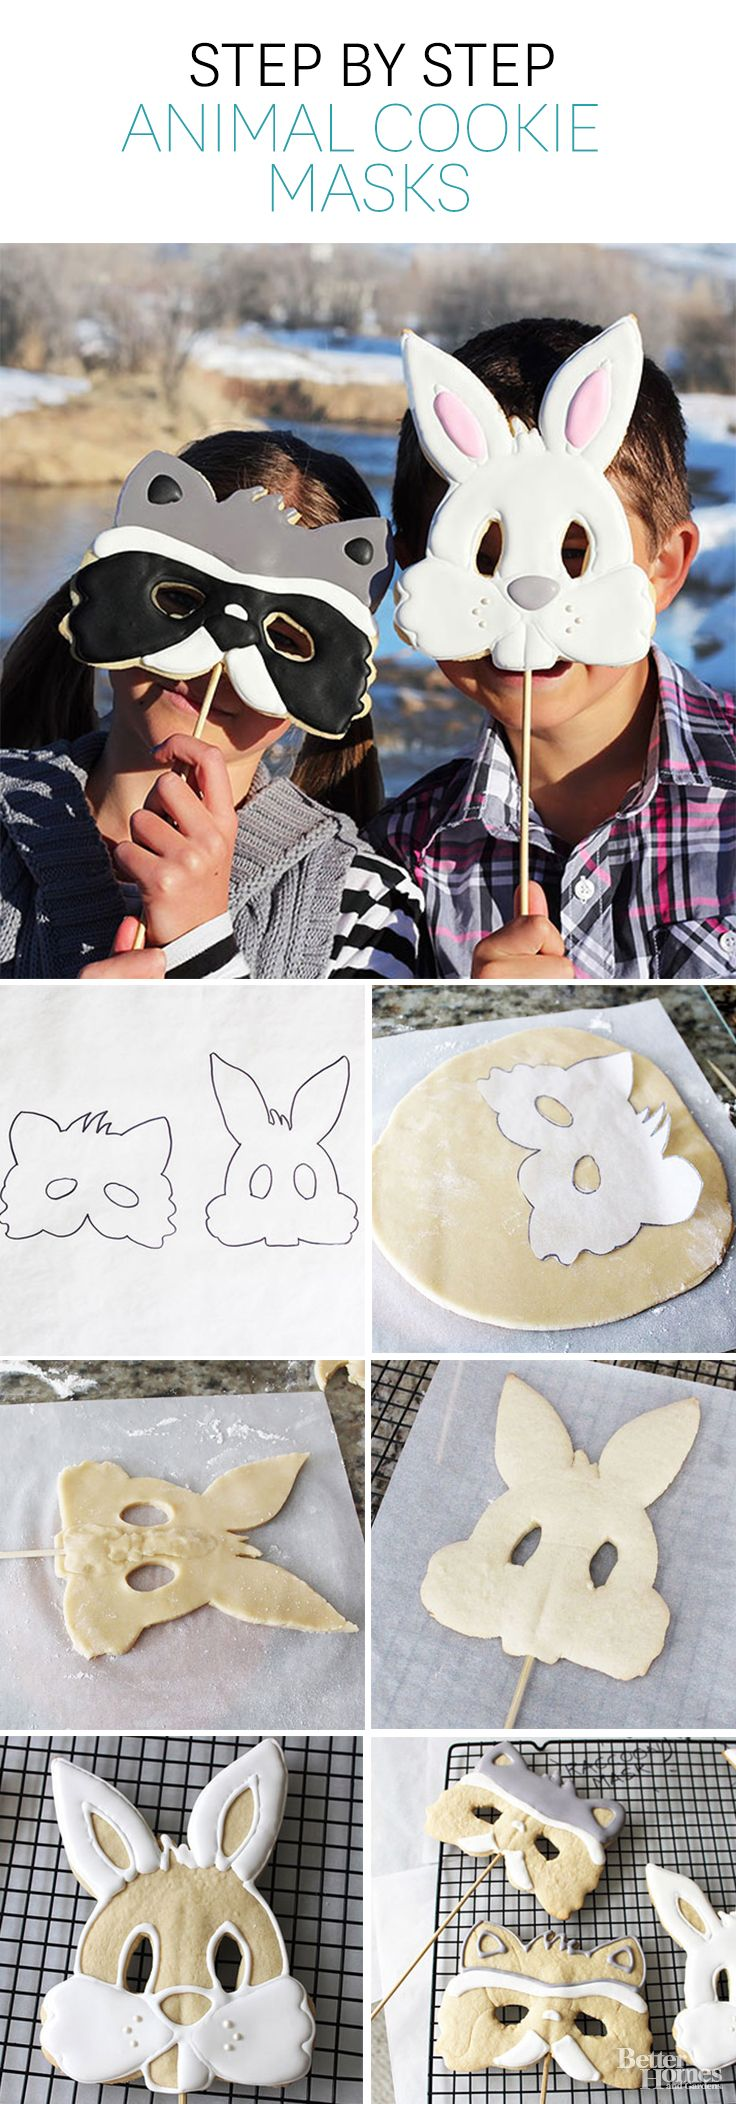 These cute animal masks are delicious and fun! Get the directions here: http://www.bhg.com/recipes/desserts/cookies/animal-cookie-masks/?socsrc=bhgpin050614cookiemasks